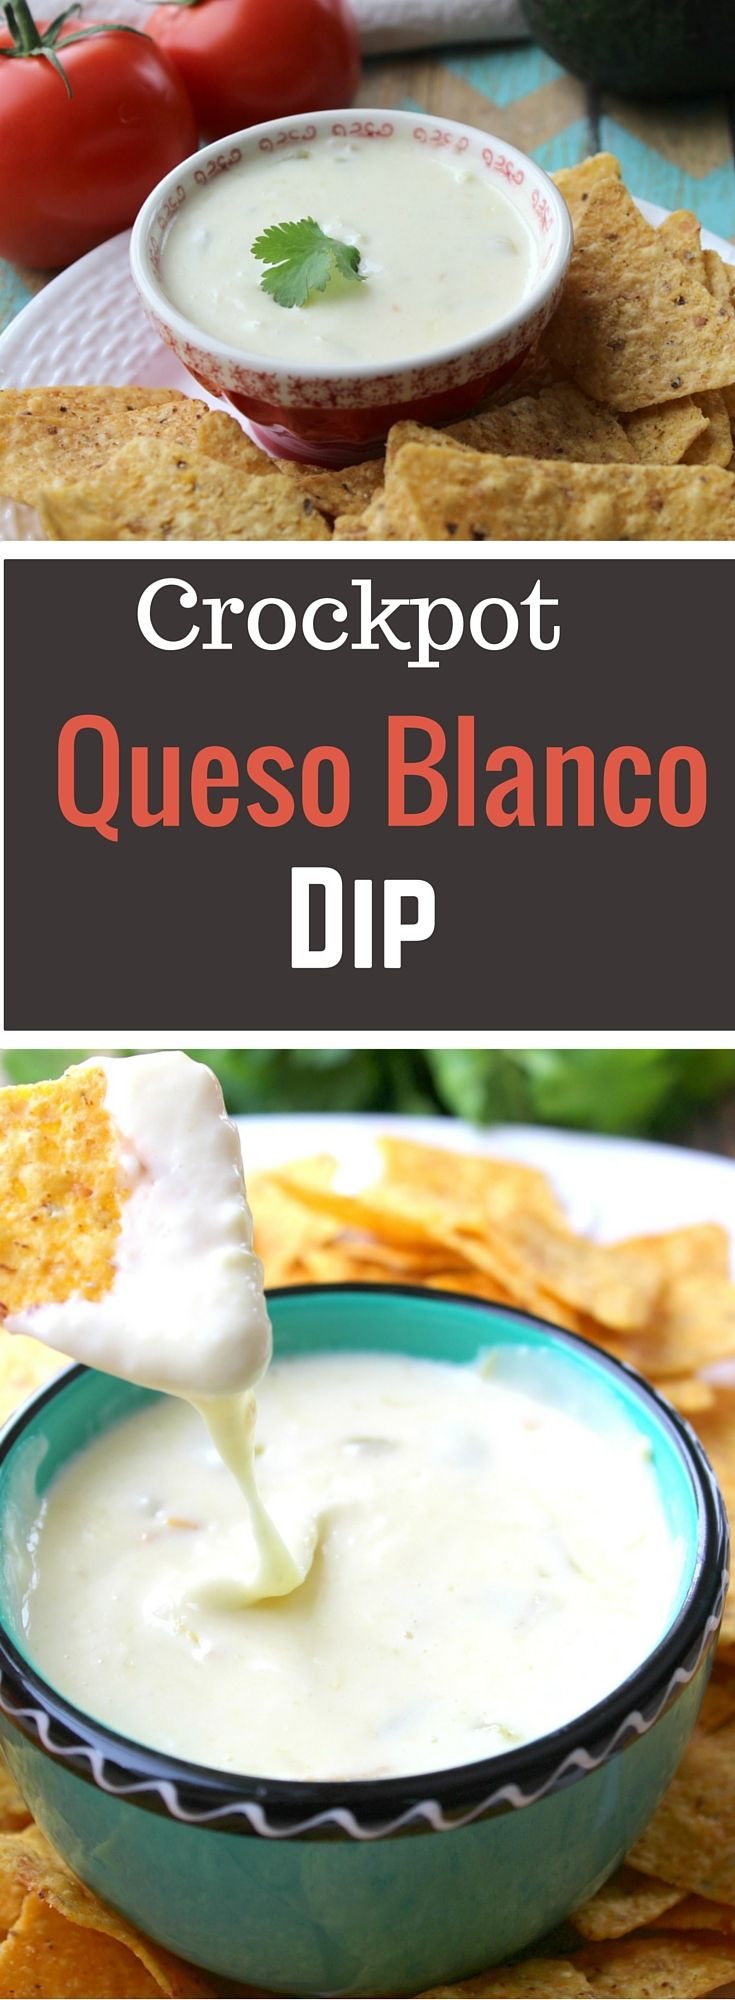 Cheesy Crockpot Queso Blanco Dip is perfect for the big Superbowl football game- Game Day Food